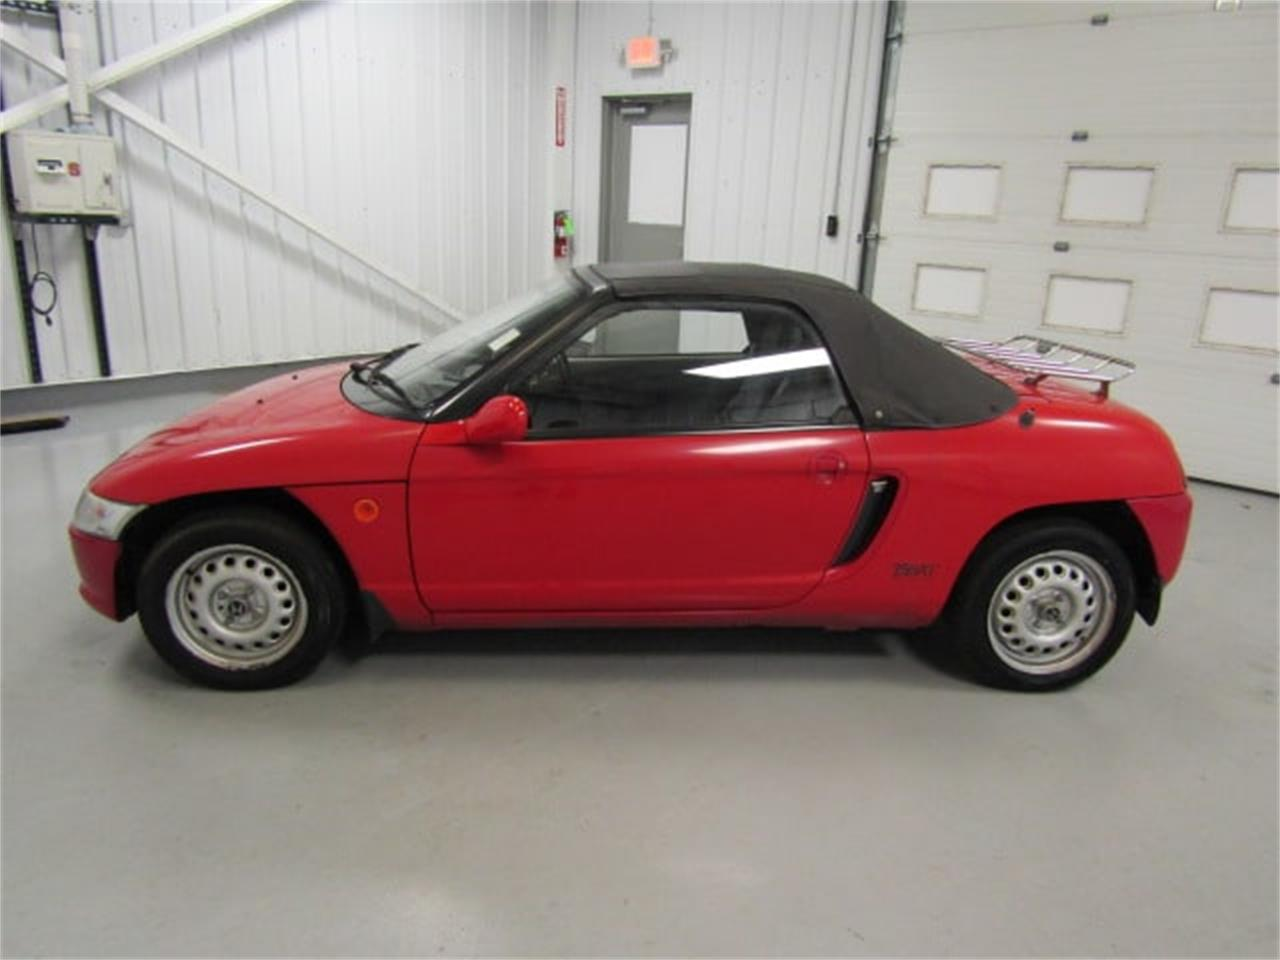 Large Picture of 1991 Honda Beat - $5,990.00 Offered by Duncan Imports & Classic Cars - JL71